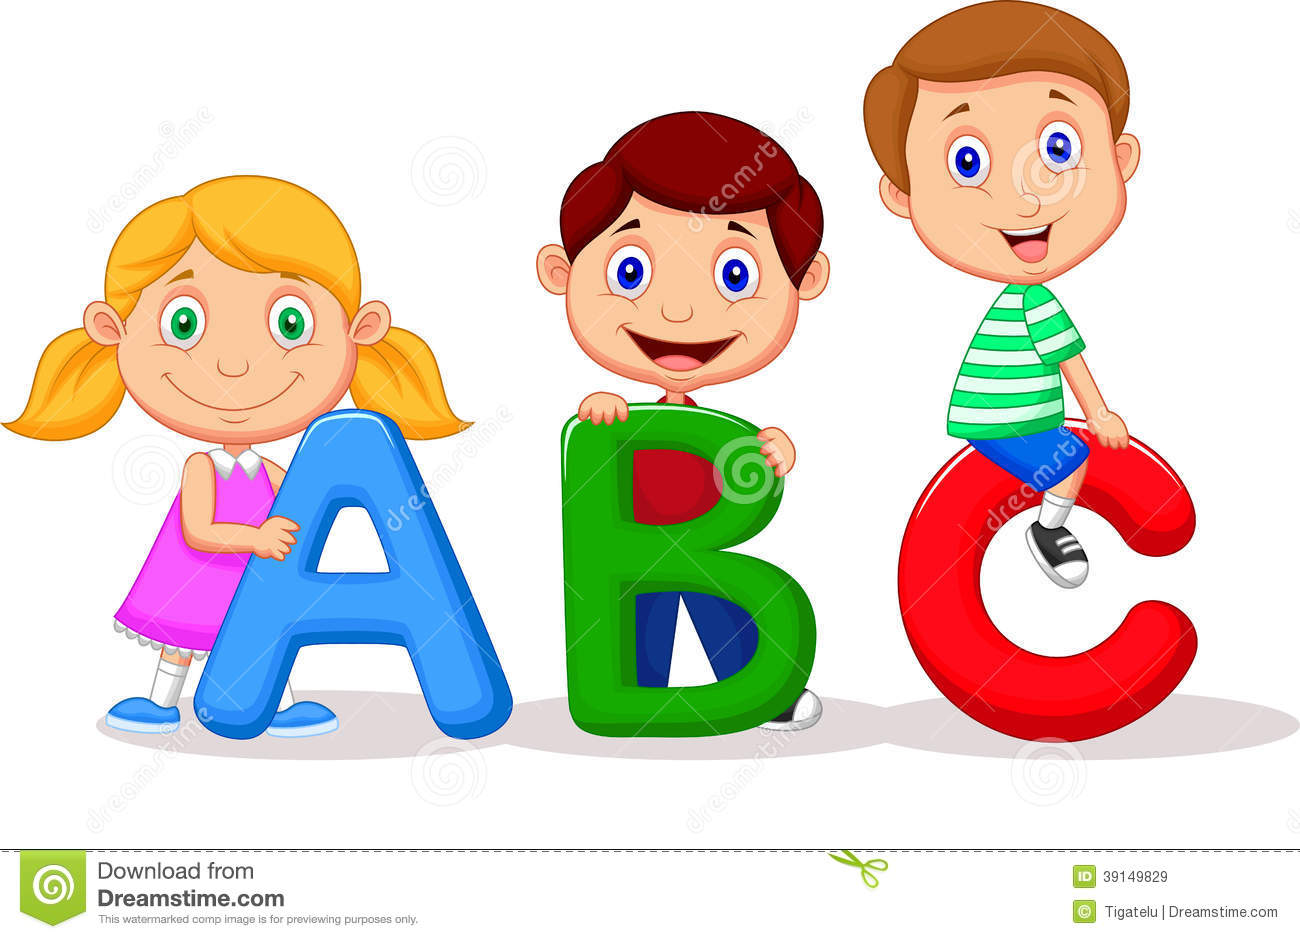 children cartoon with abc alphabet stock vector - Cartoon Children Pictures